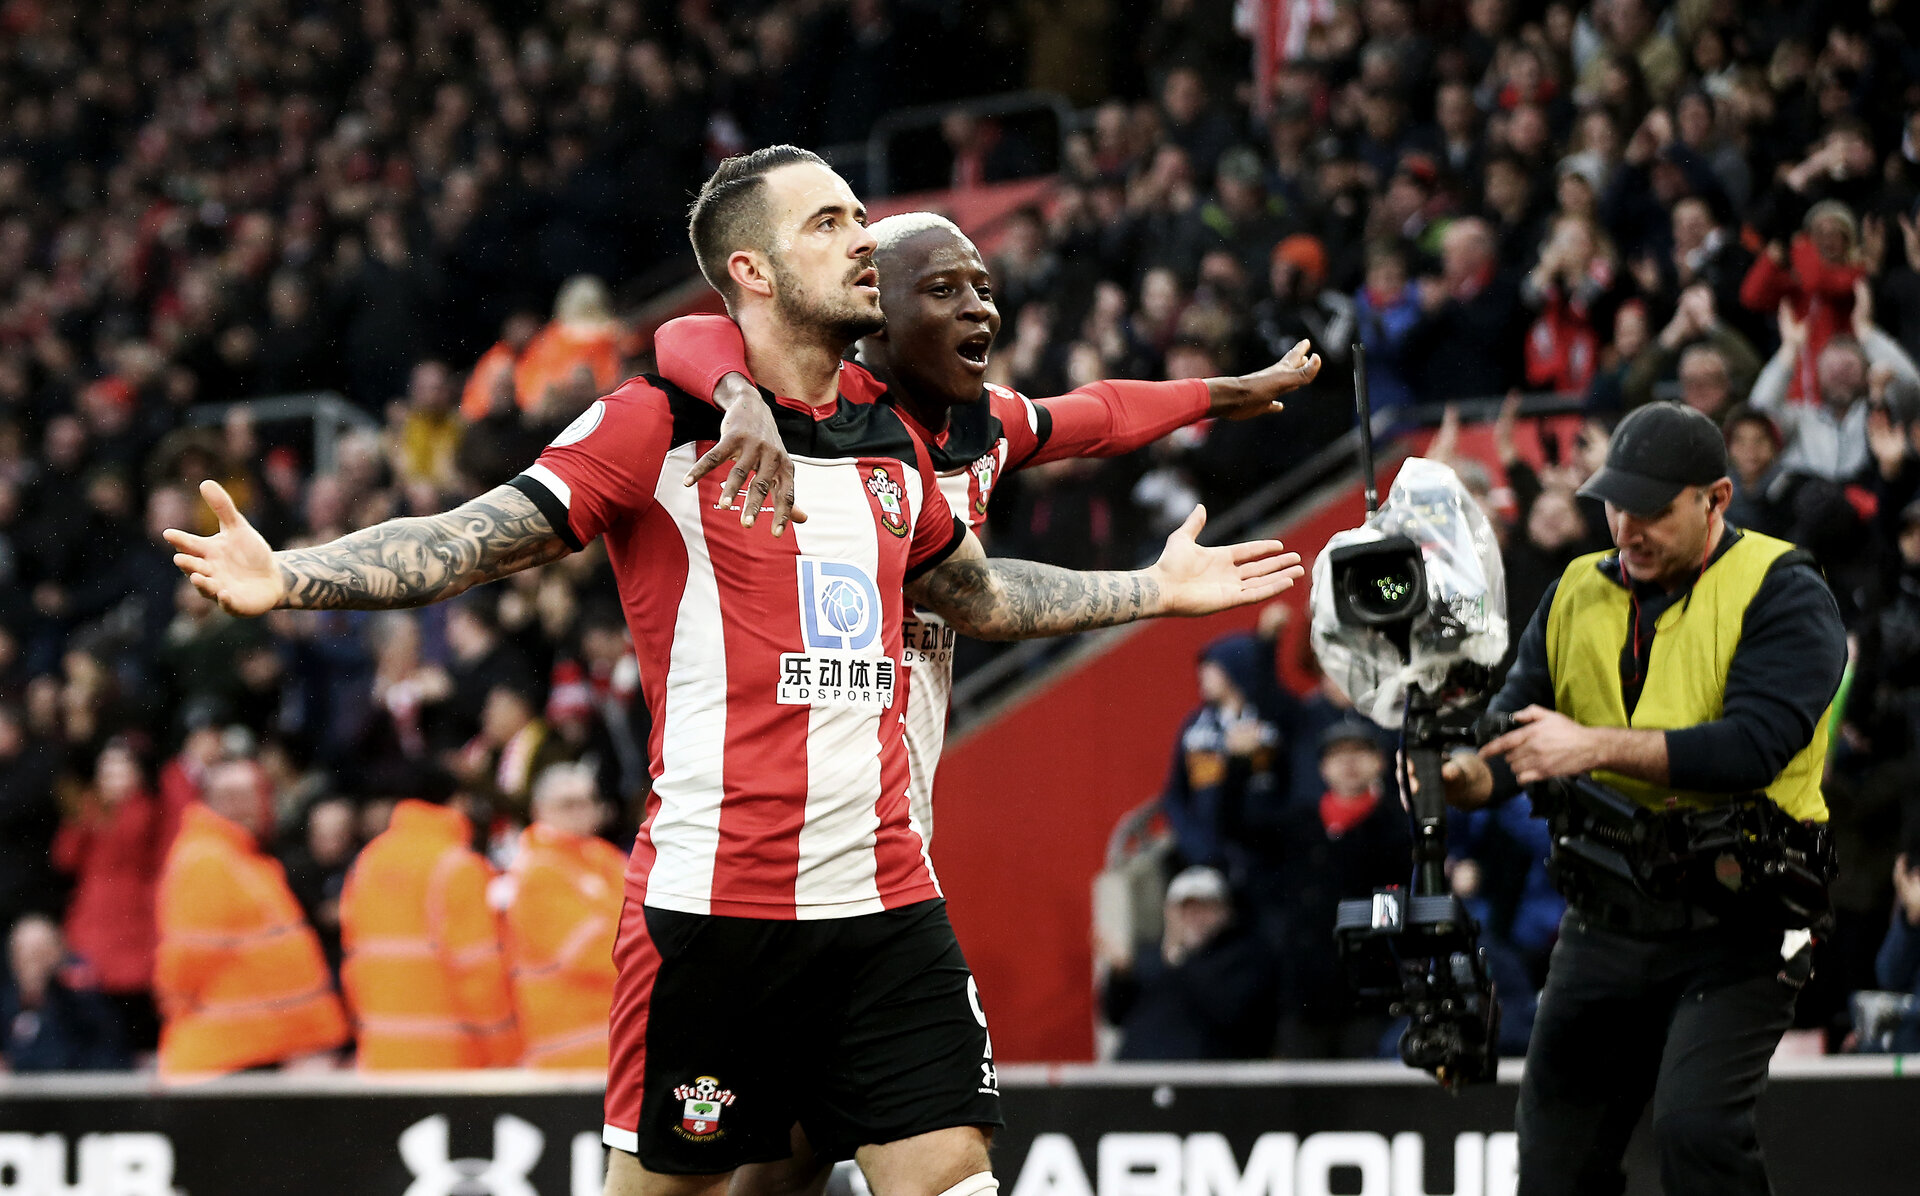 SOUTHAMPTON, ENGLAND - JANUARY 01: Danny Ings(L) of Southampton and Moussa Djenepo celebrate during the Premier League match between Southampton FC and Tottenham Hotspur at St Mary's Stadium on January 01, 2020 in Southampton, United Kingdom. (Photo by Matt Watson/Southampton FC via Getty Images)